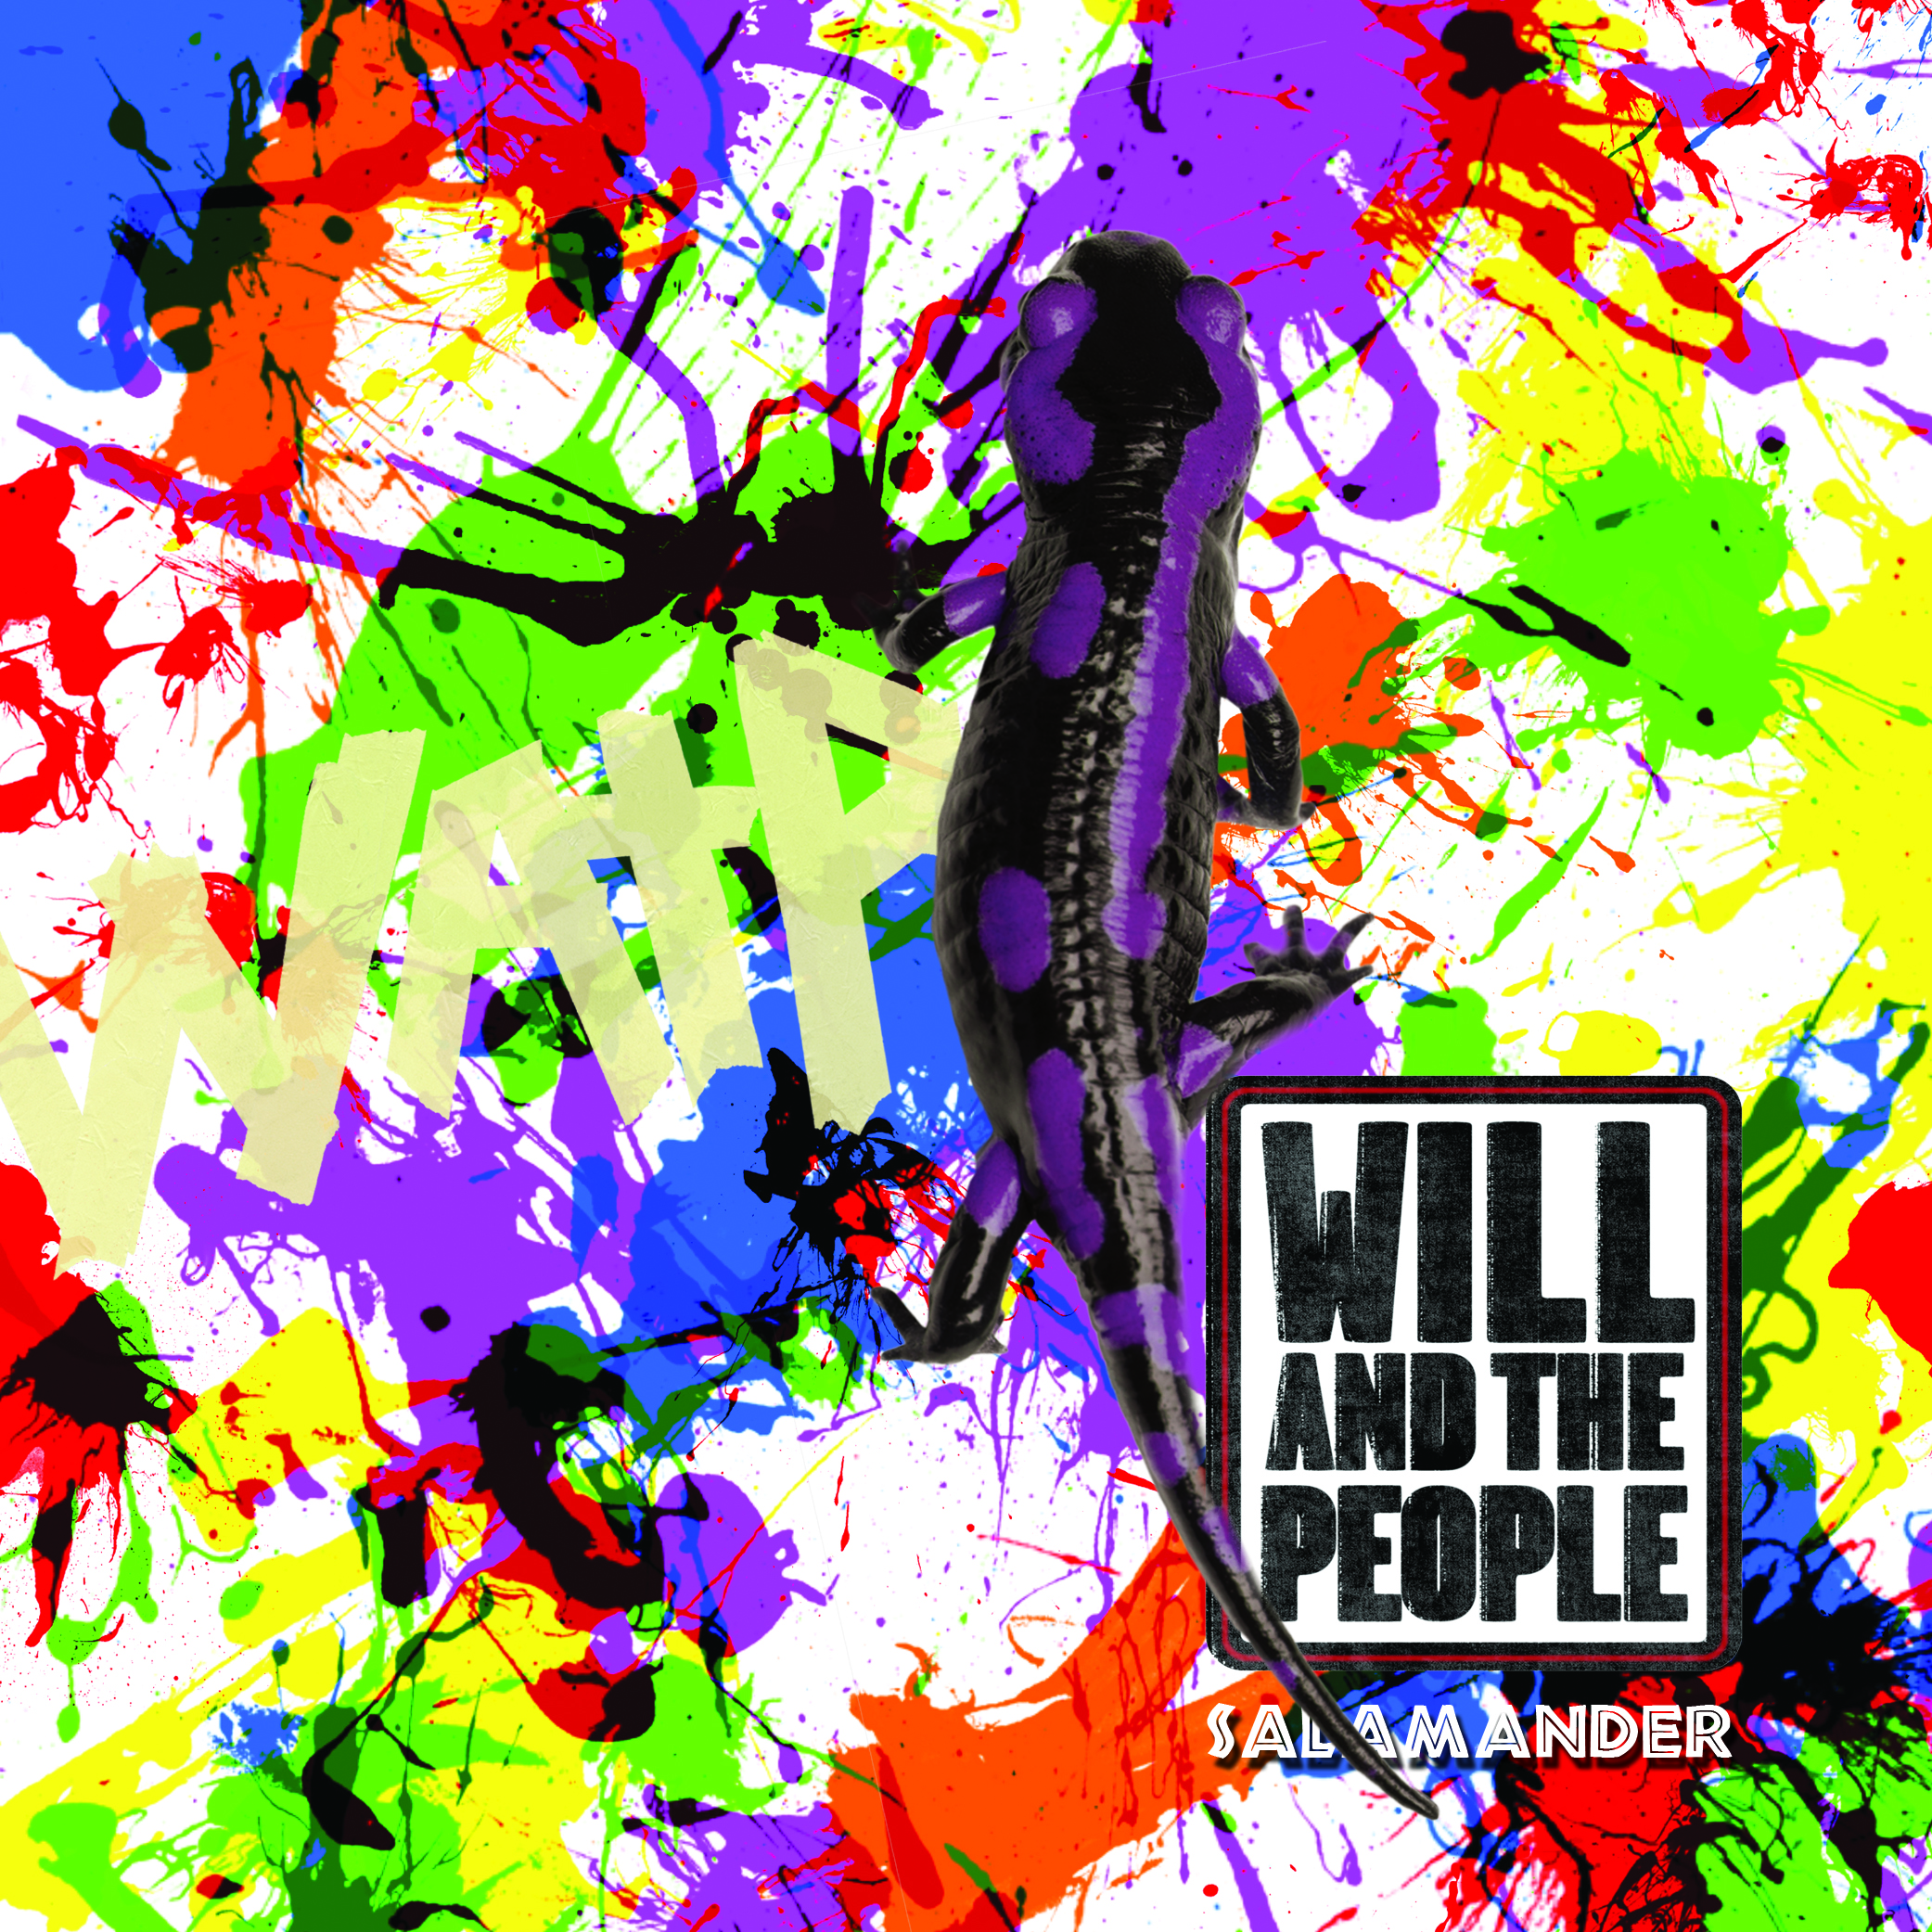 Salamander Video - Will and The People